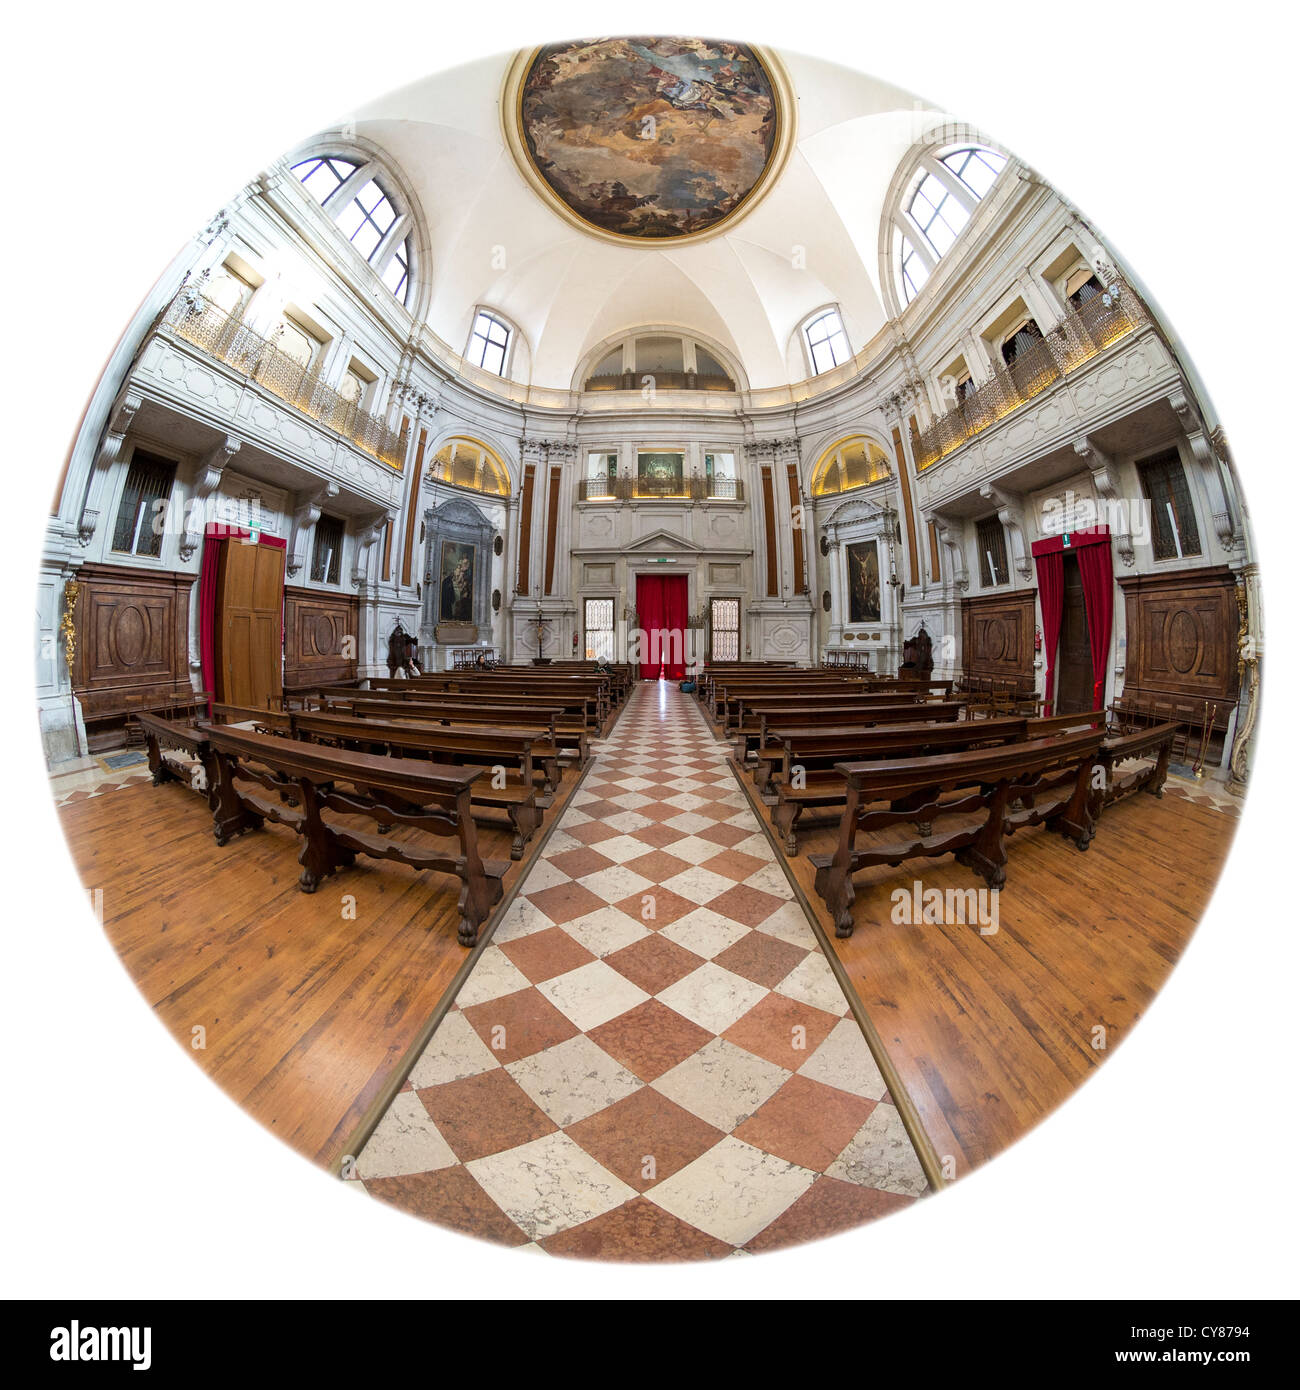 Interior of the church of Santa Maria della Pieta, in Venice, associated with Vivaldi and with frescoes by Tiepolo - Stock Image